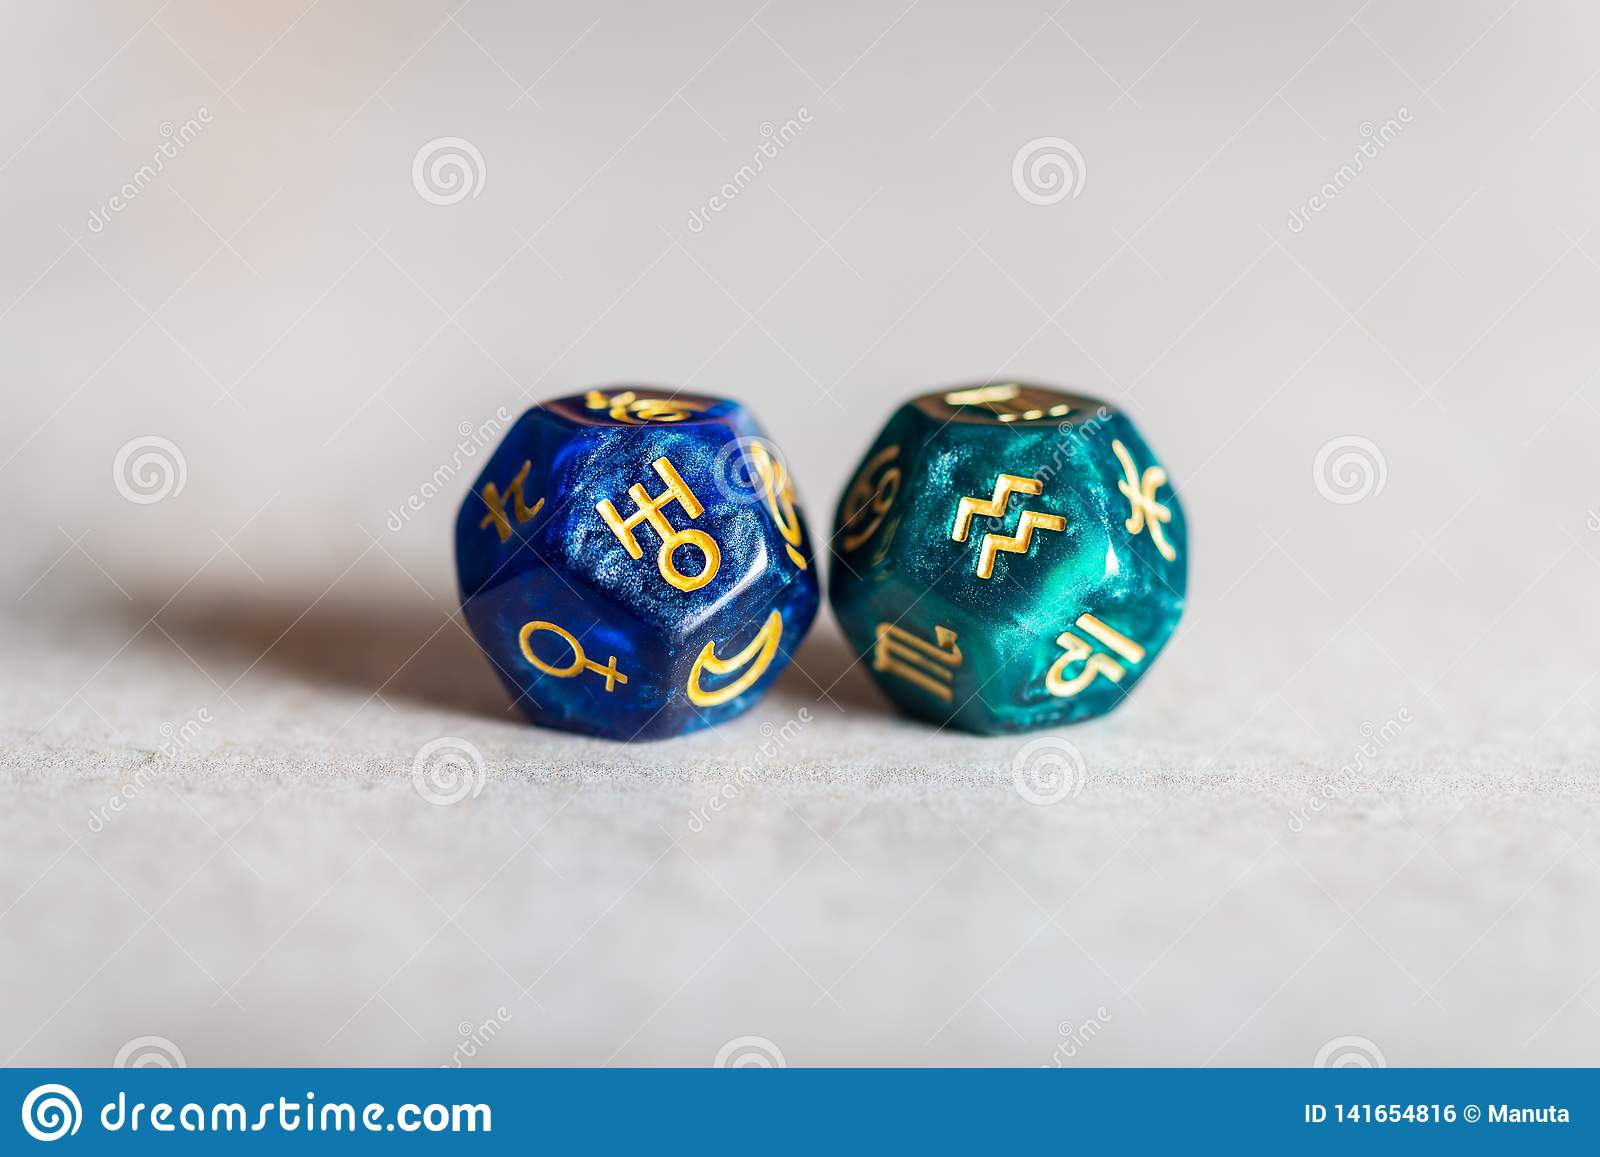 Astrology Dice with zodiac symbol of Aquarius and its ruling planet Uranus